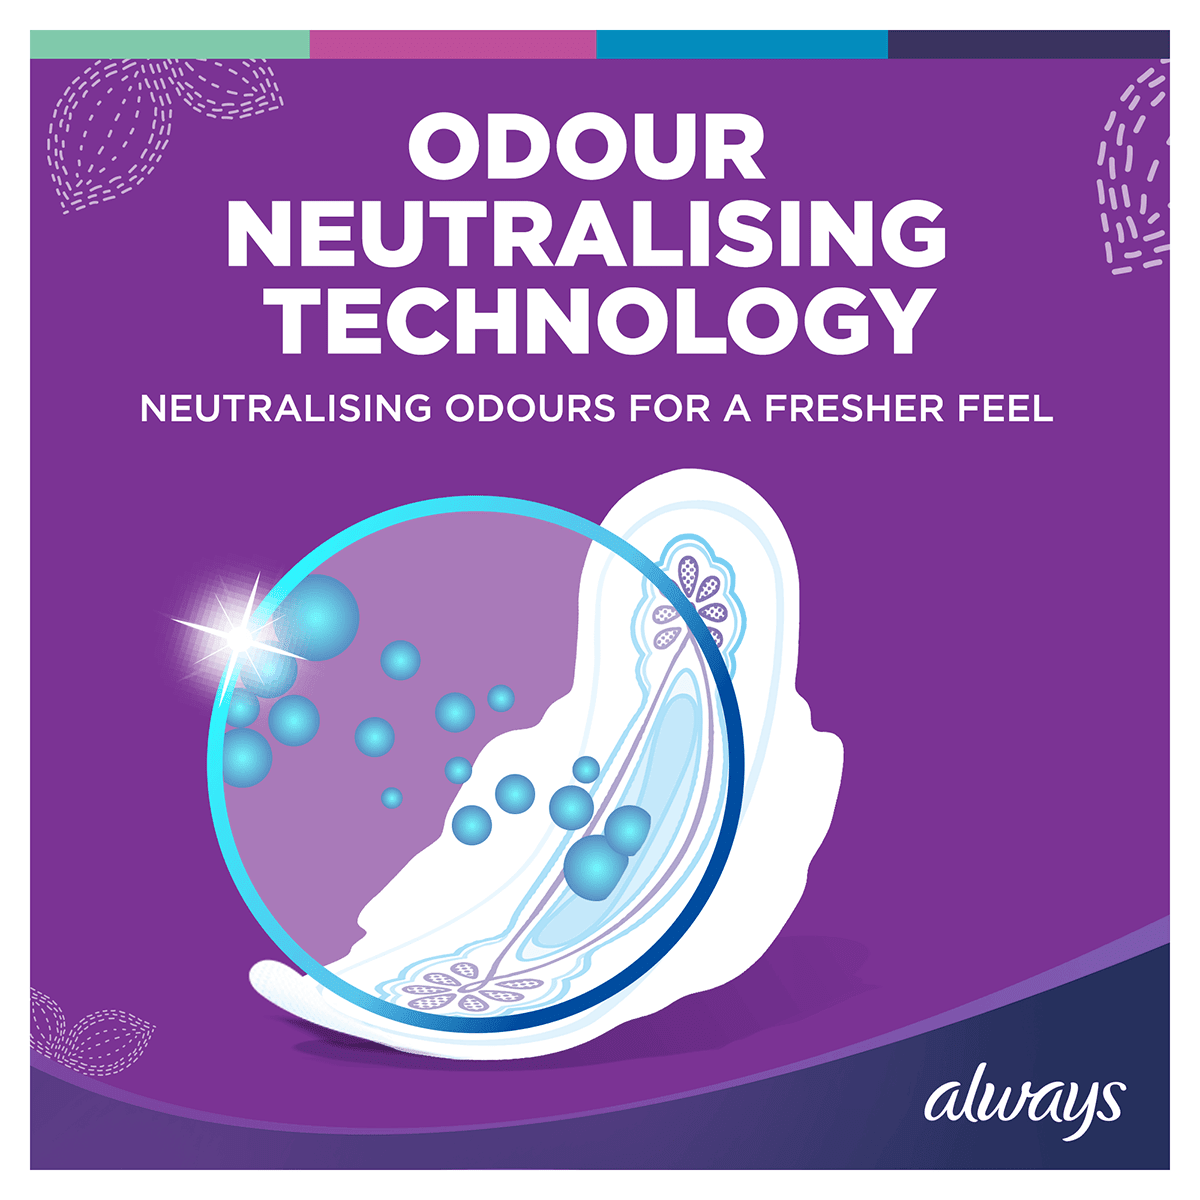 ALWAYS Ultra Long Wings Sanitary Towel Menstrual Cycle Odour Neutralising Technology